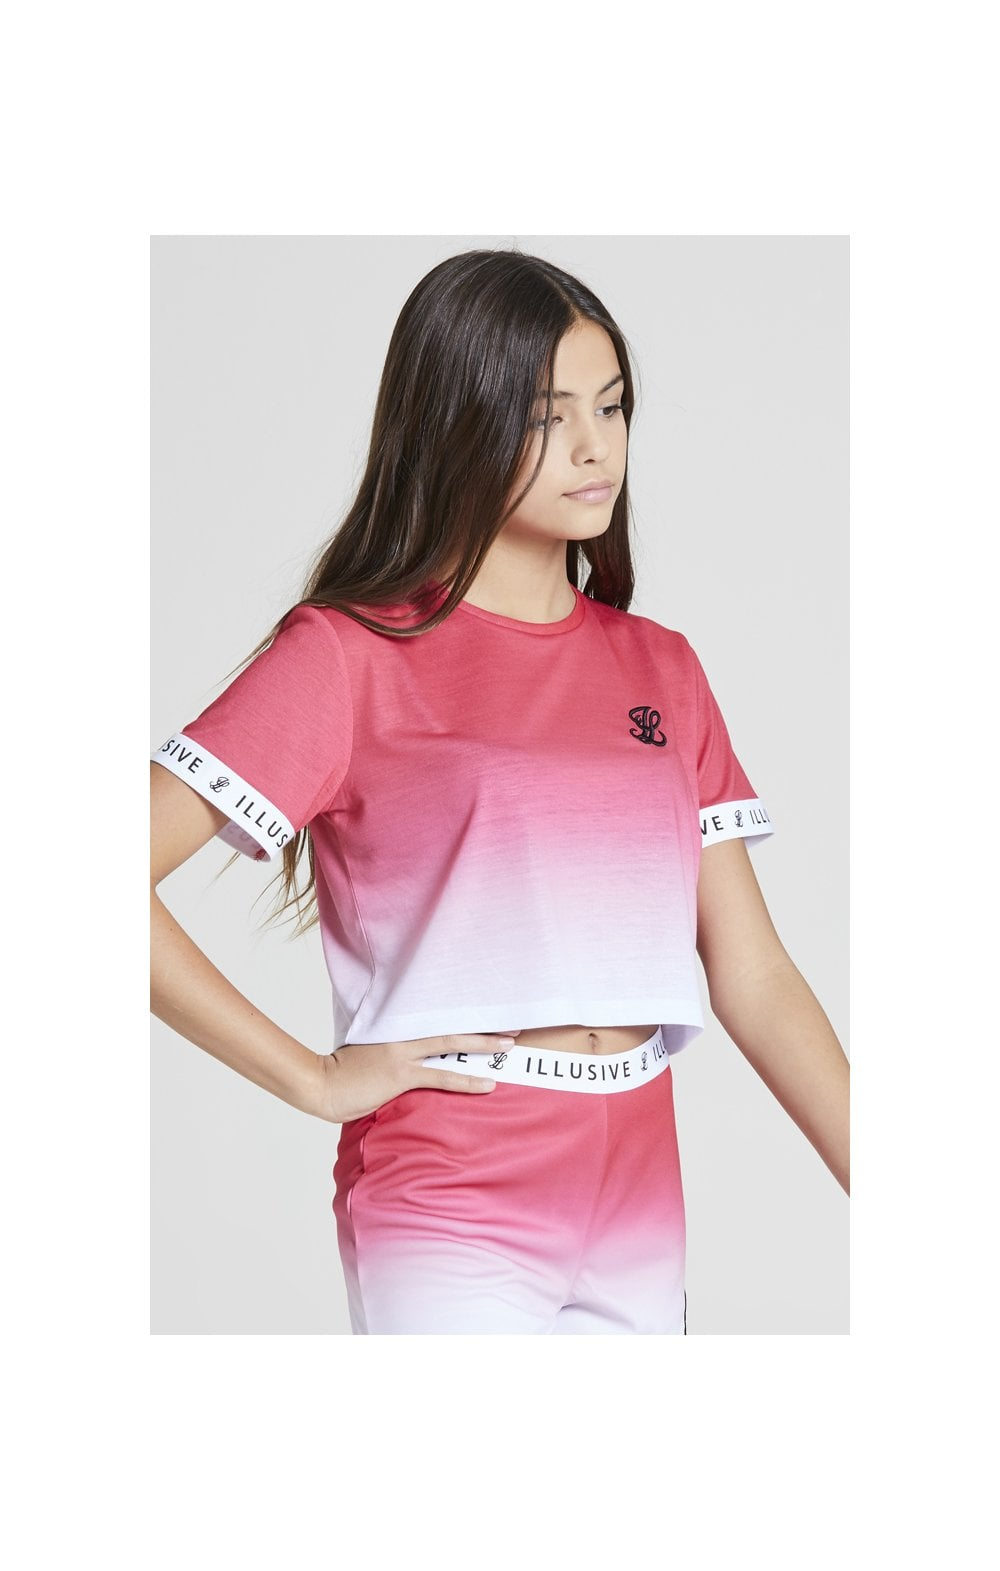 Illusive London Pink Fade Croped Tee - Pink & White (2)